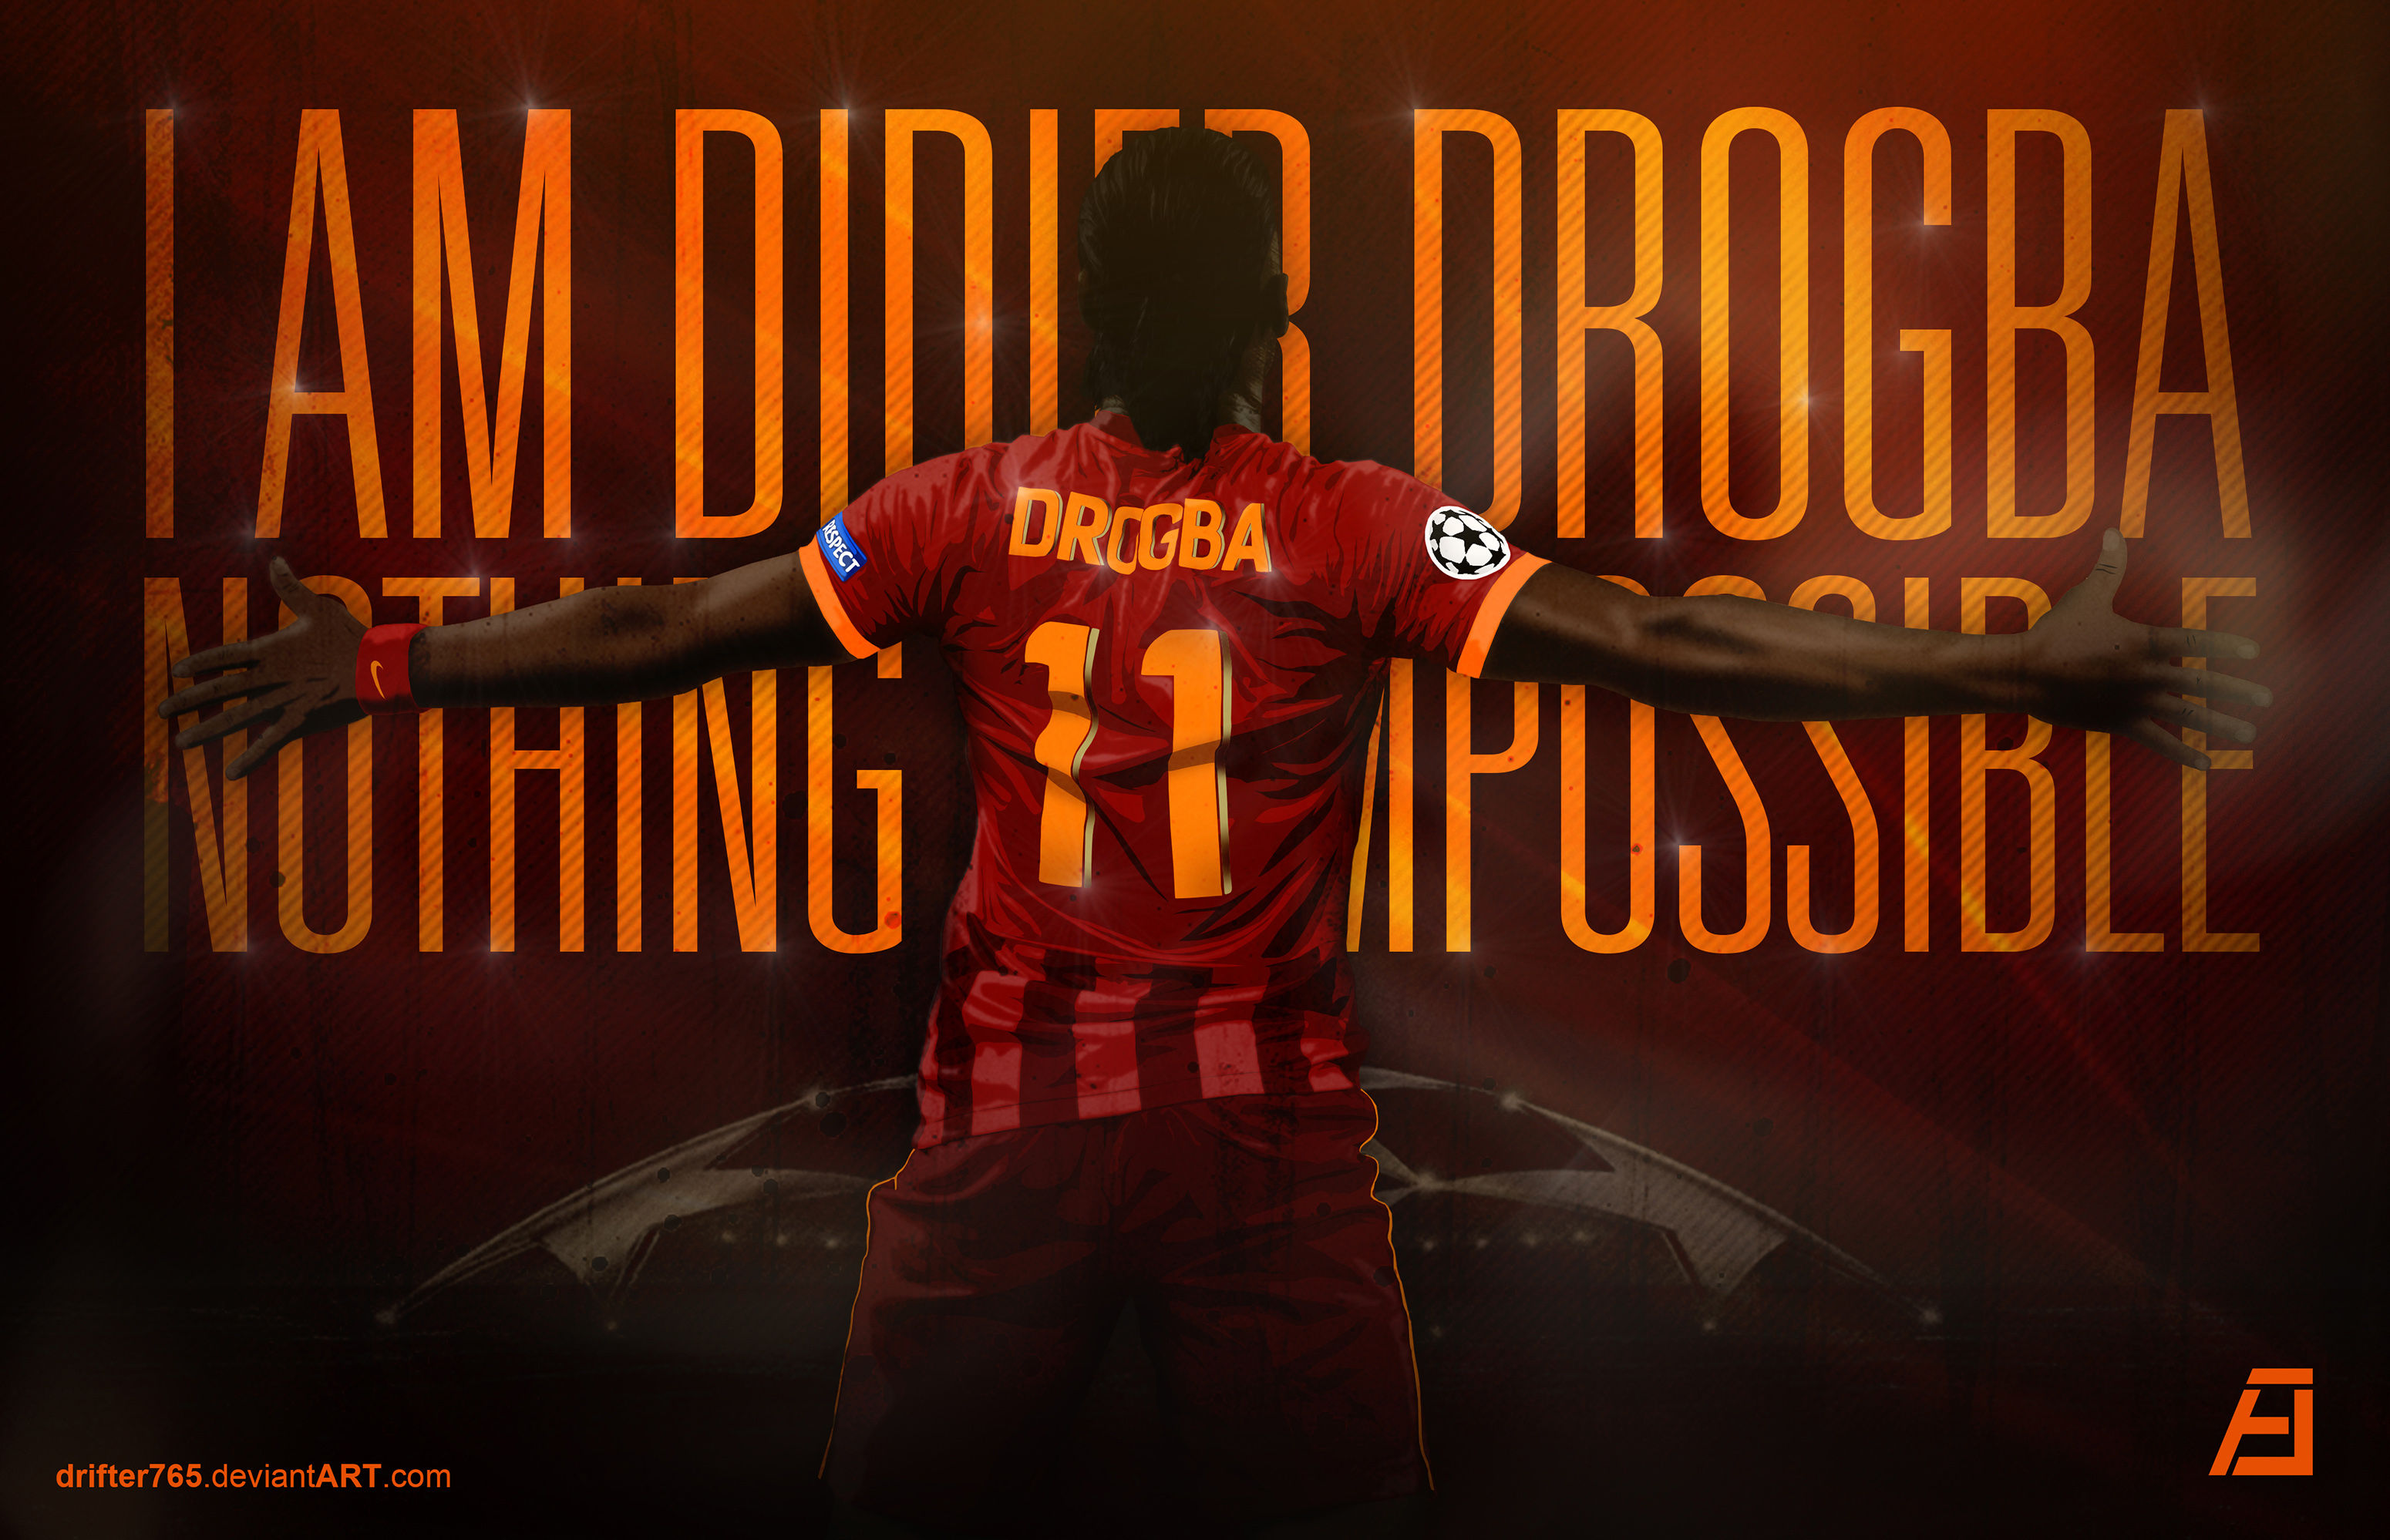 DIDIER DROGBA by drifter765